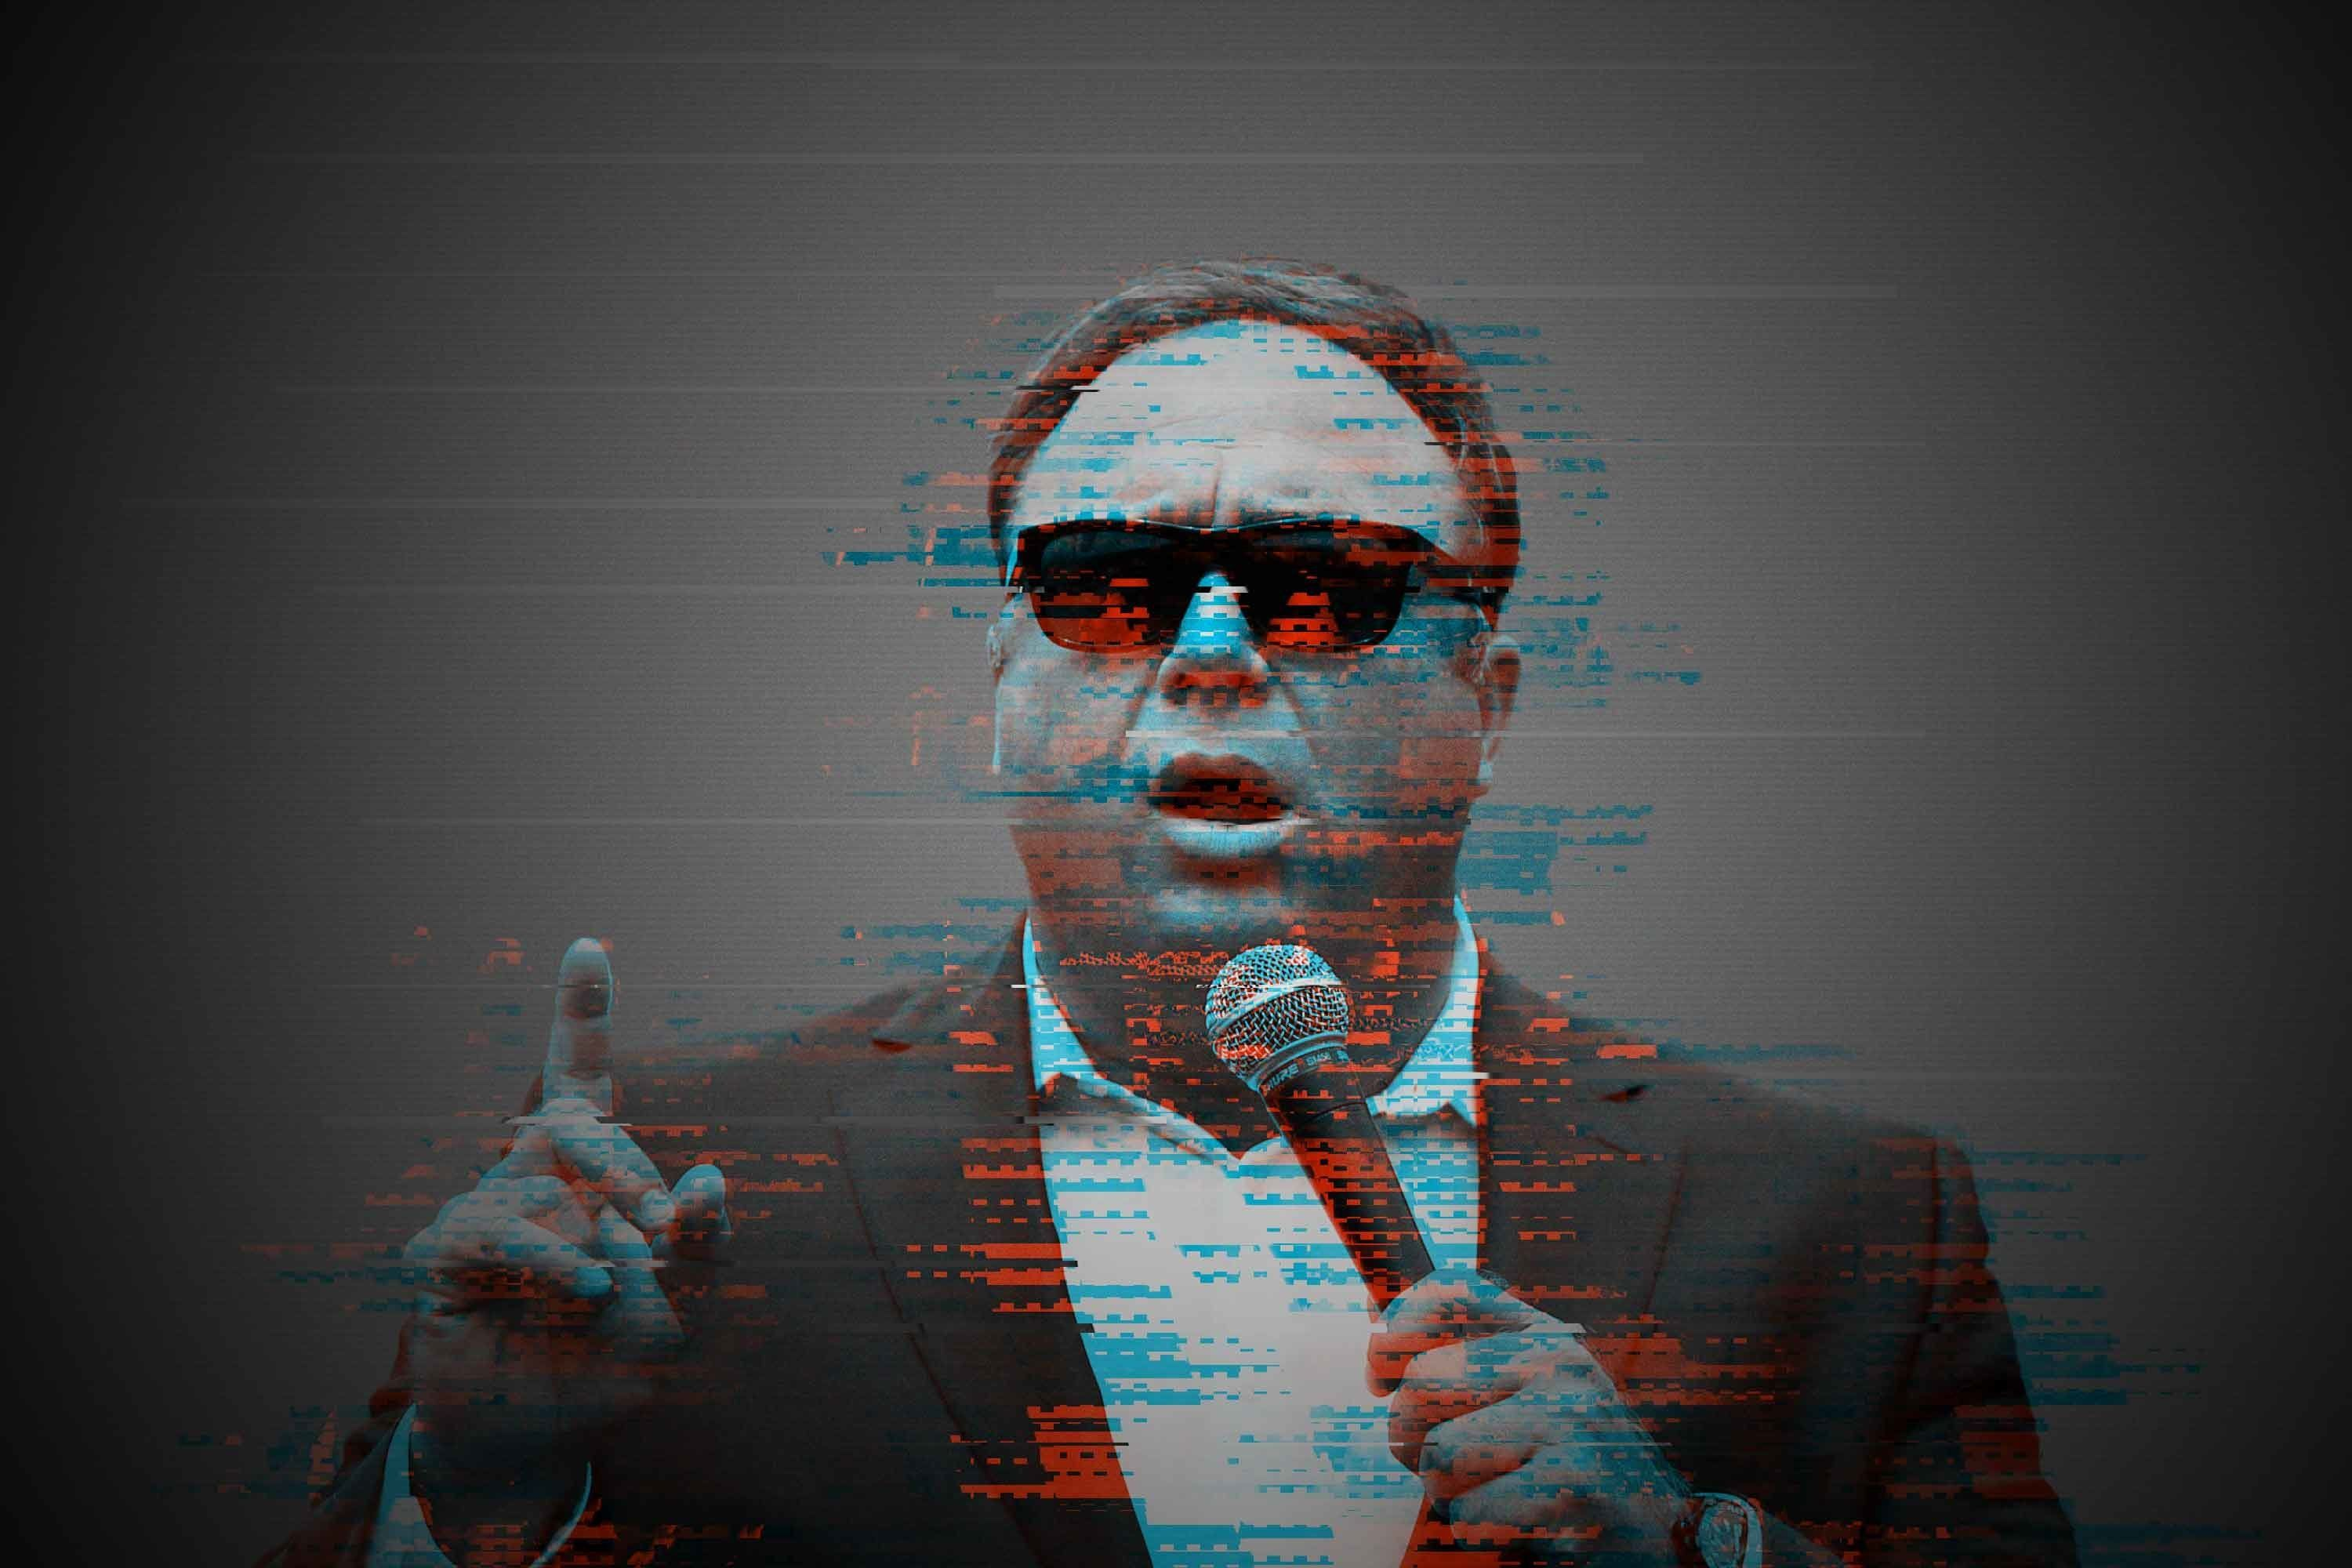 Alex Jones Destroyed Evidence In Sandy Hook Defamation Cases Motion Says